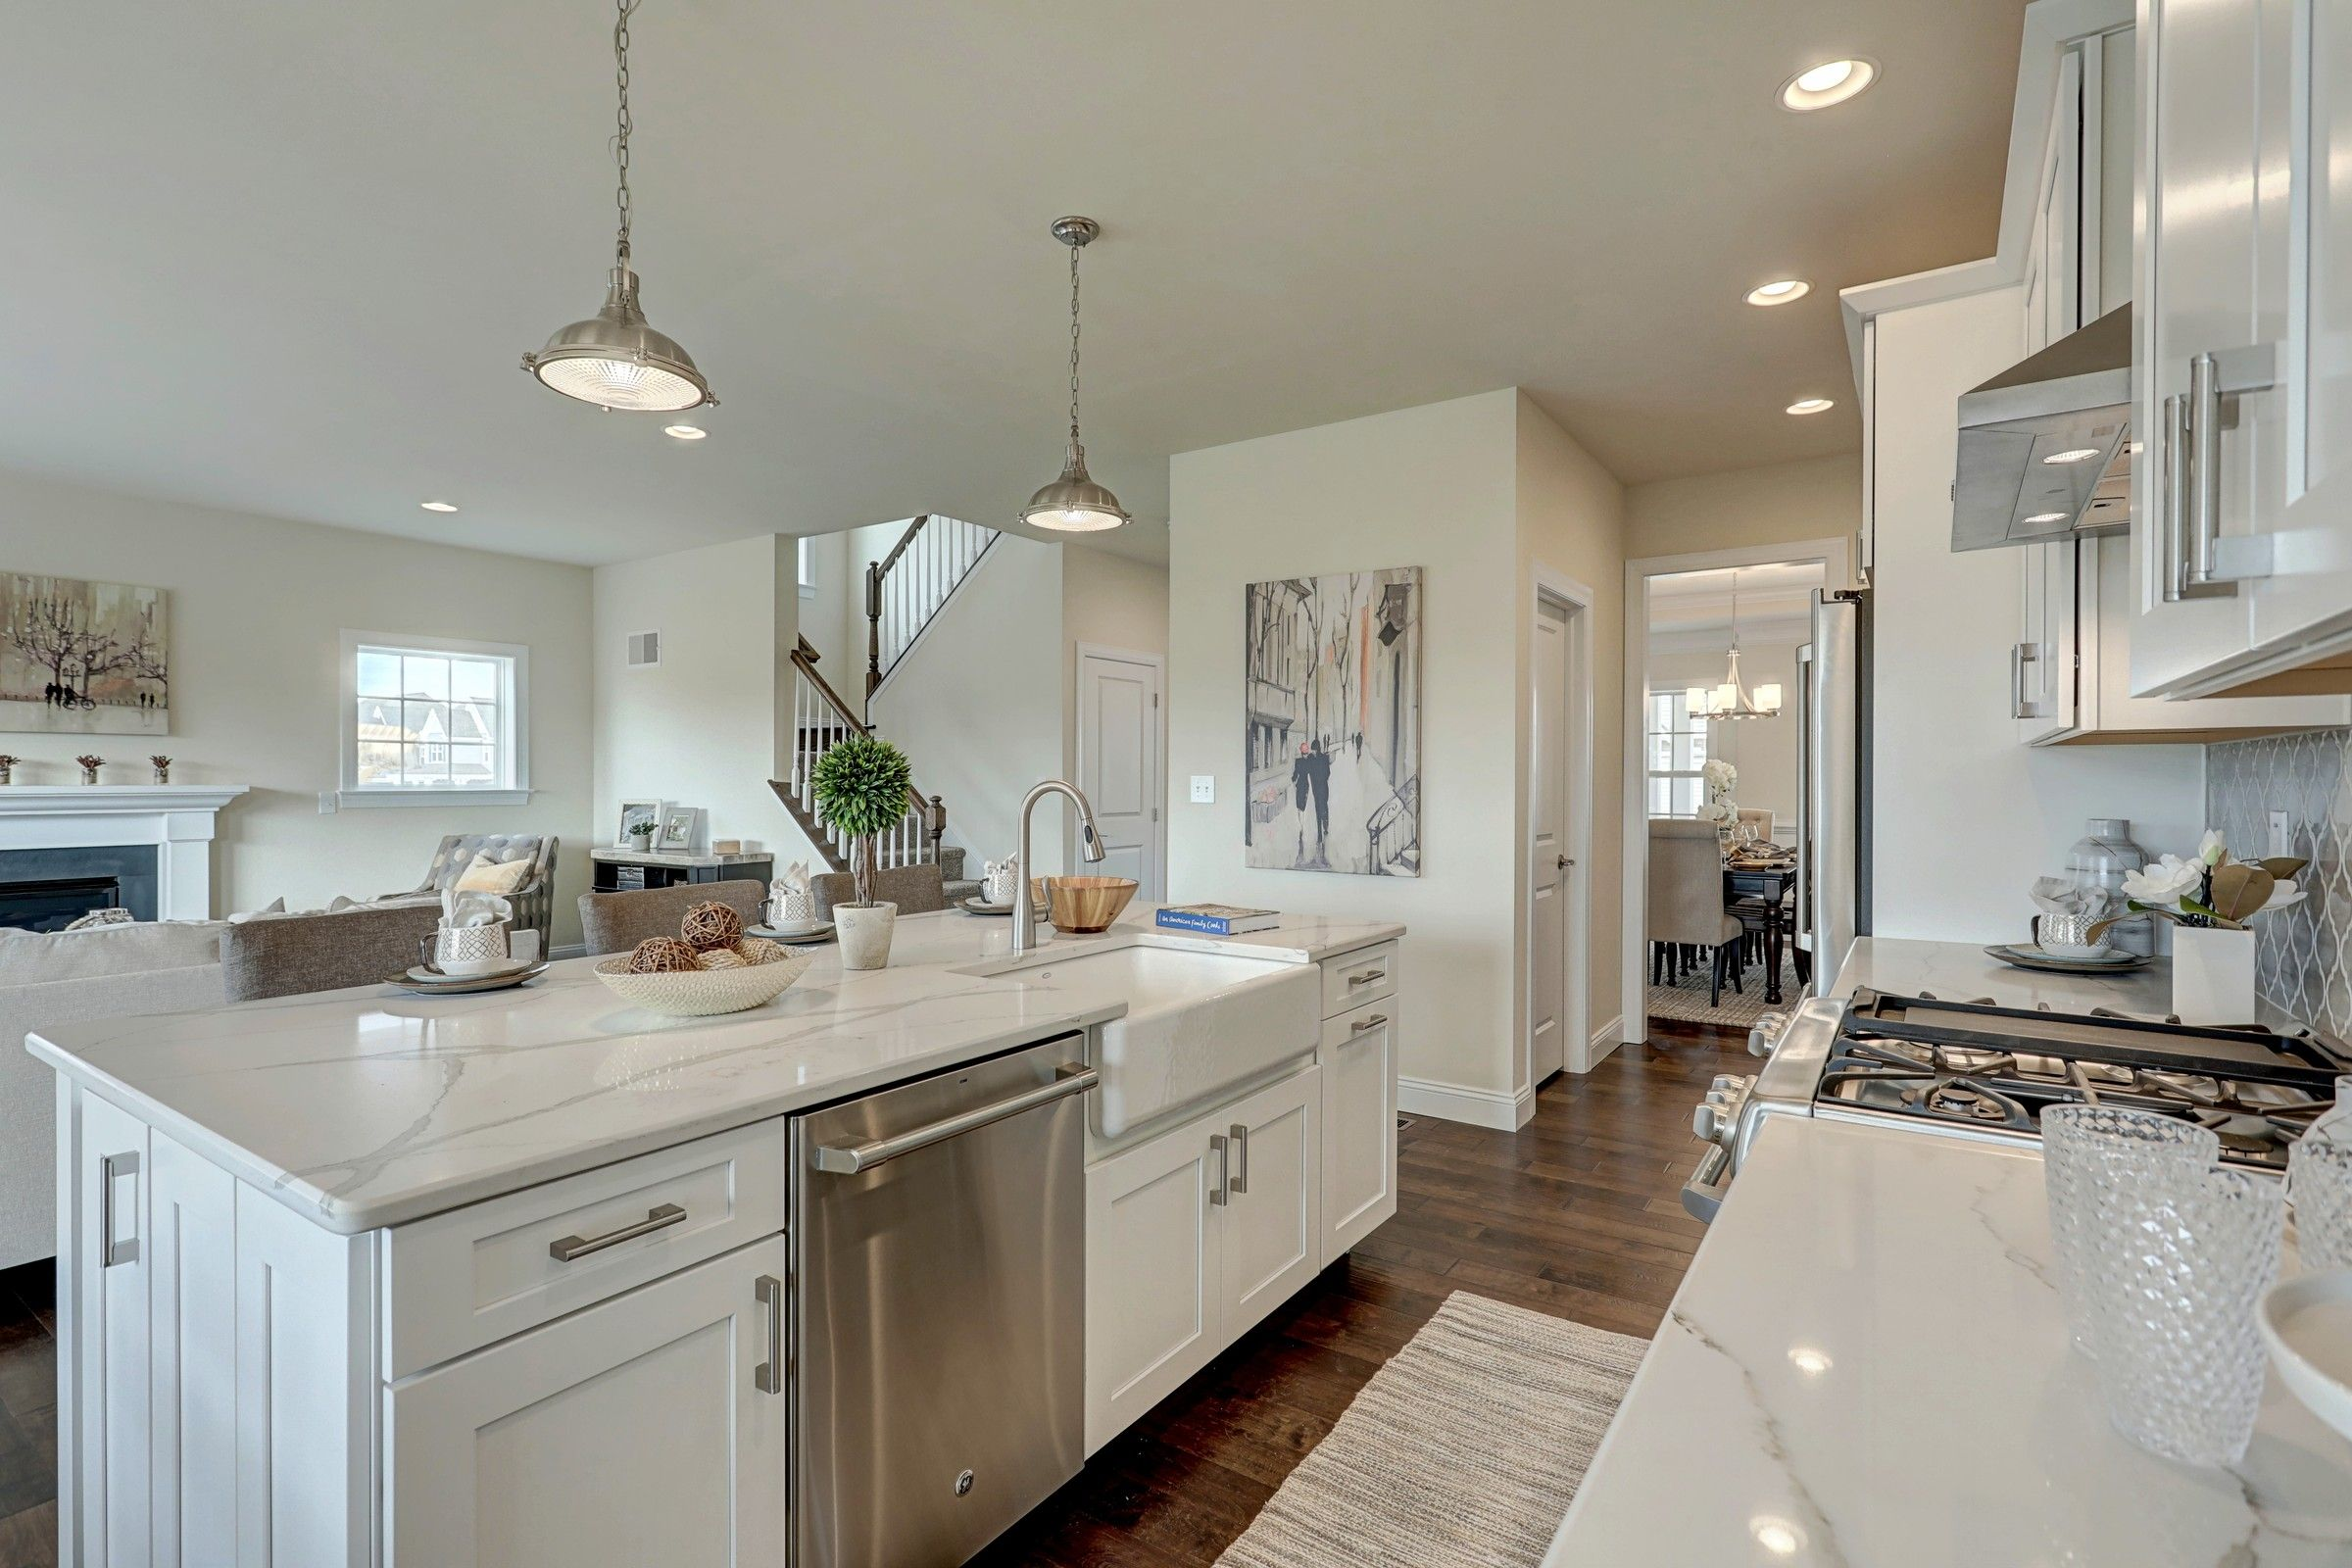 Kitchen featured in the Addison Farmhouse By Keystone Custom Homes in Philadelphia, PA